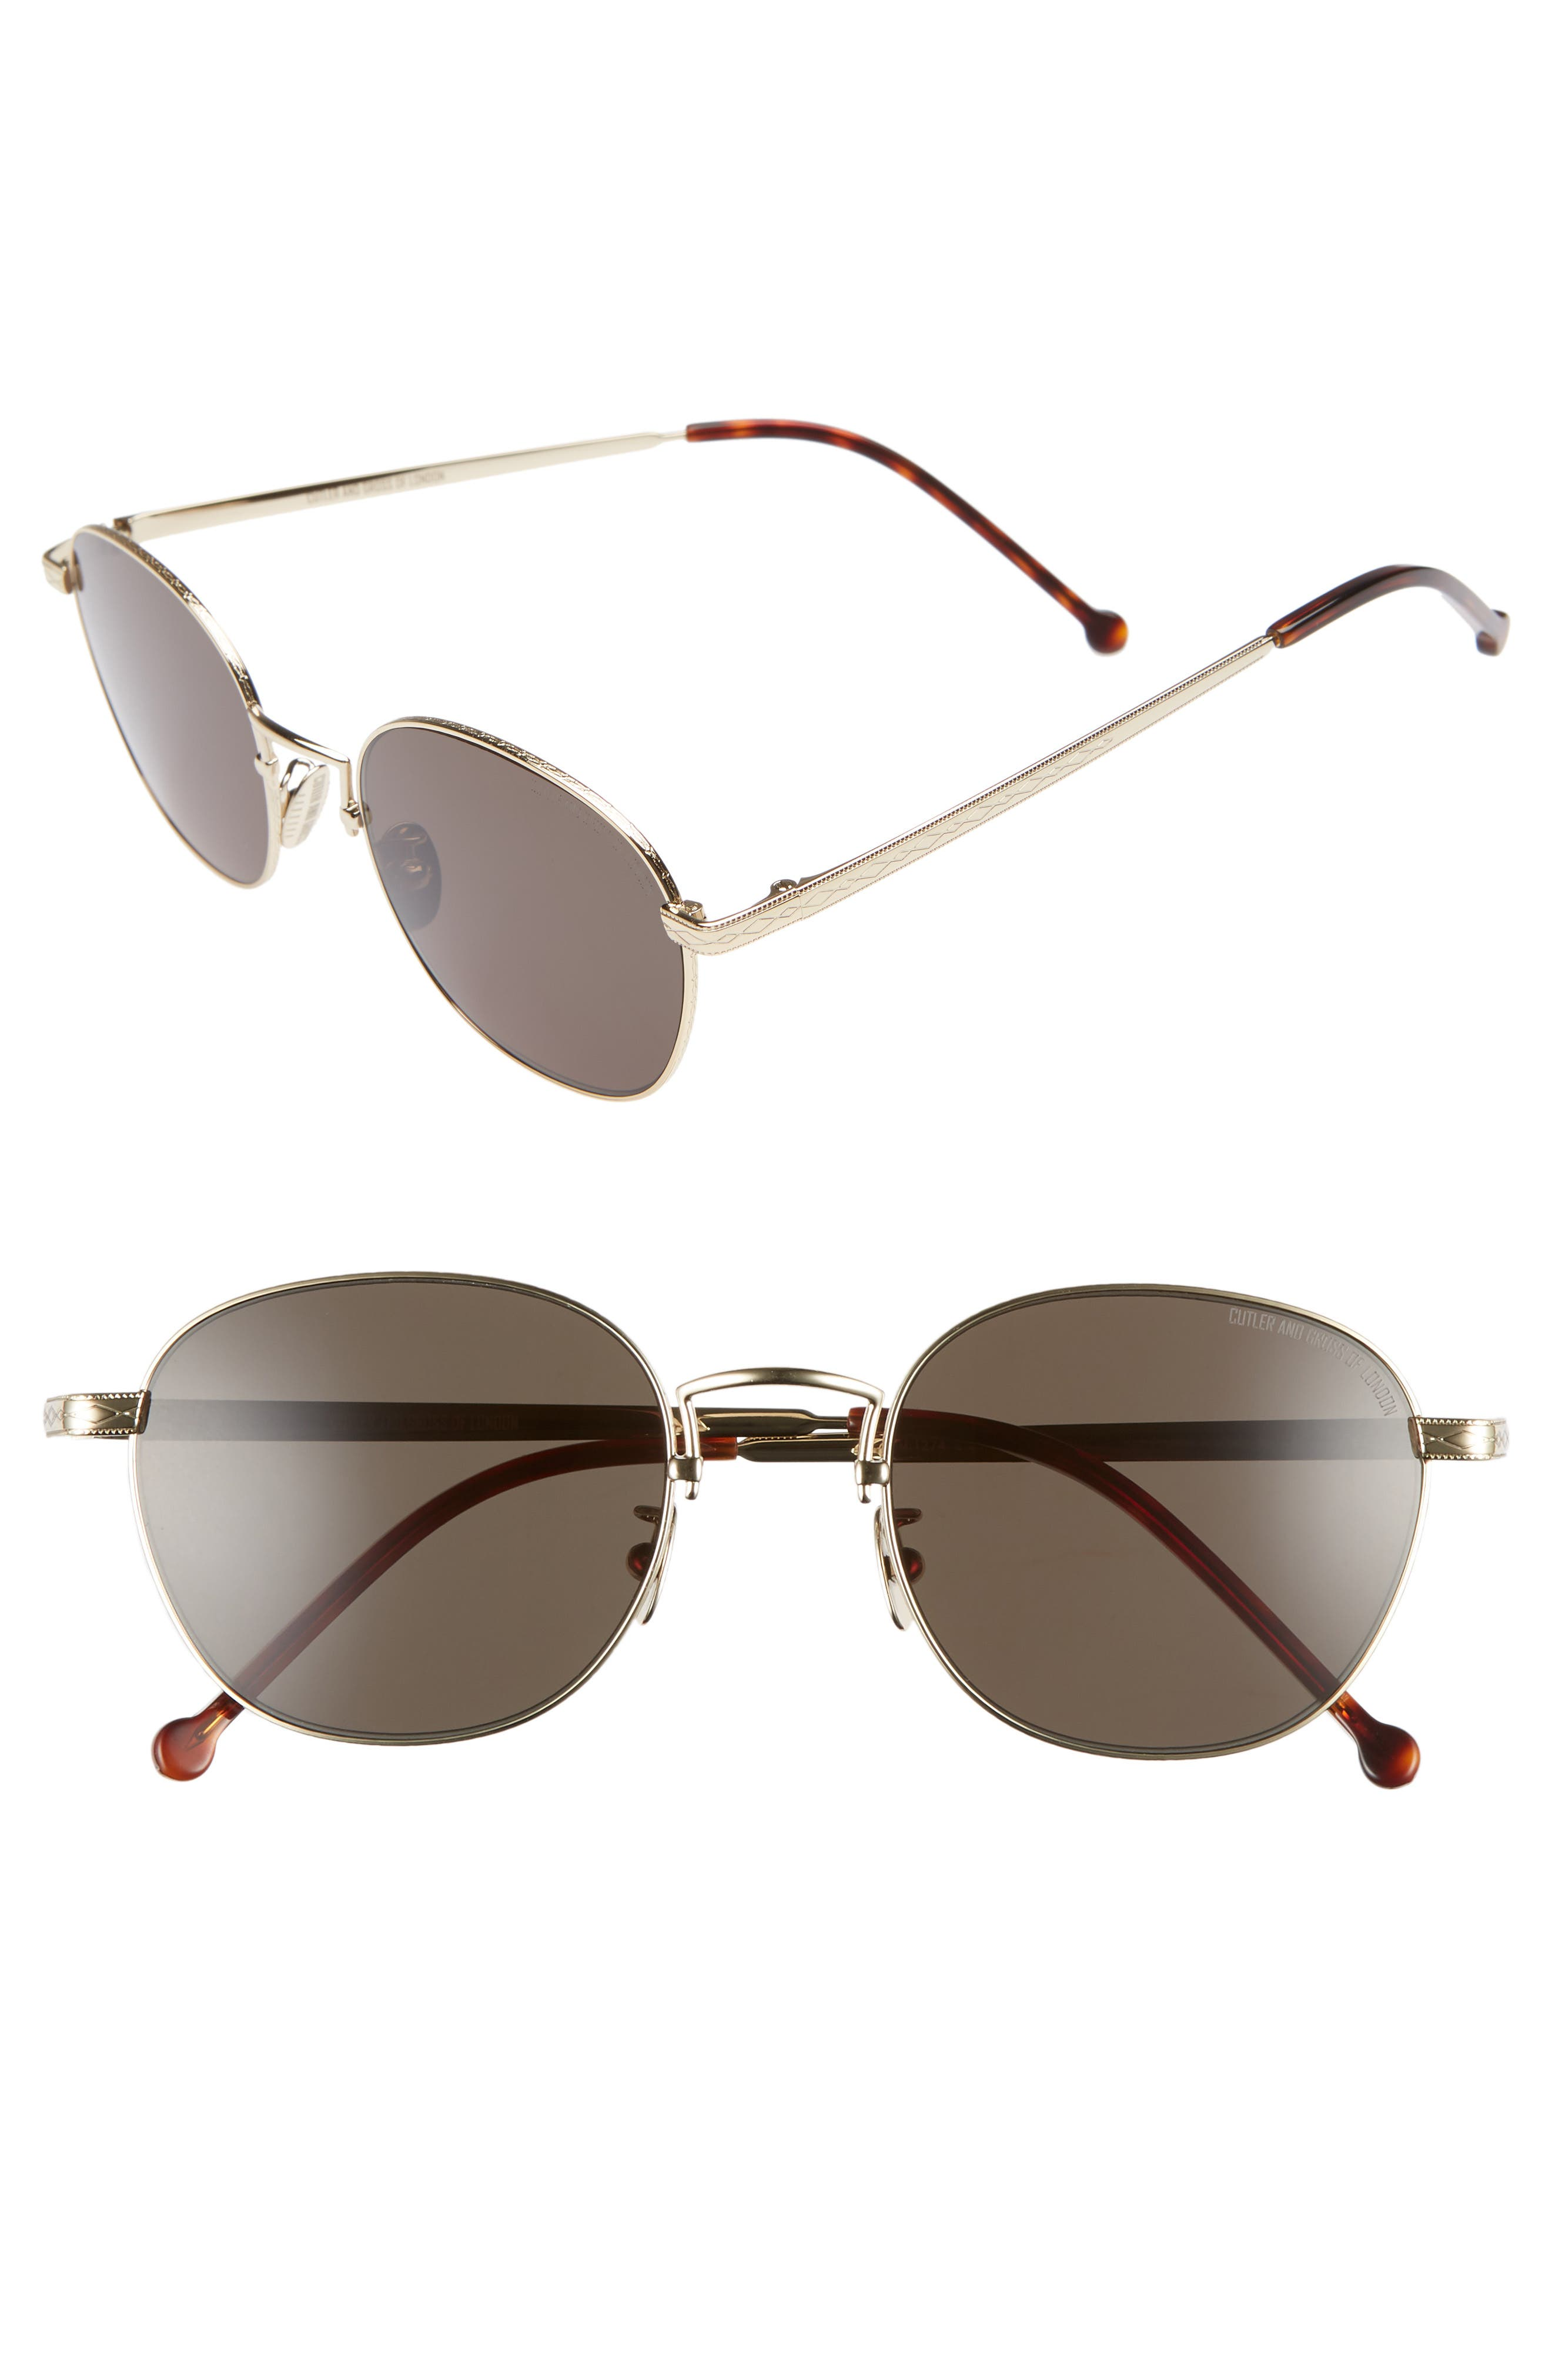 CUTLER AND GROSS 52MM POLARIZED ROUND SUNGLASSES - ANTIQUE GOLD/ GREEN